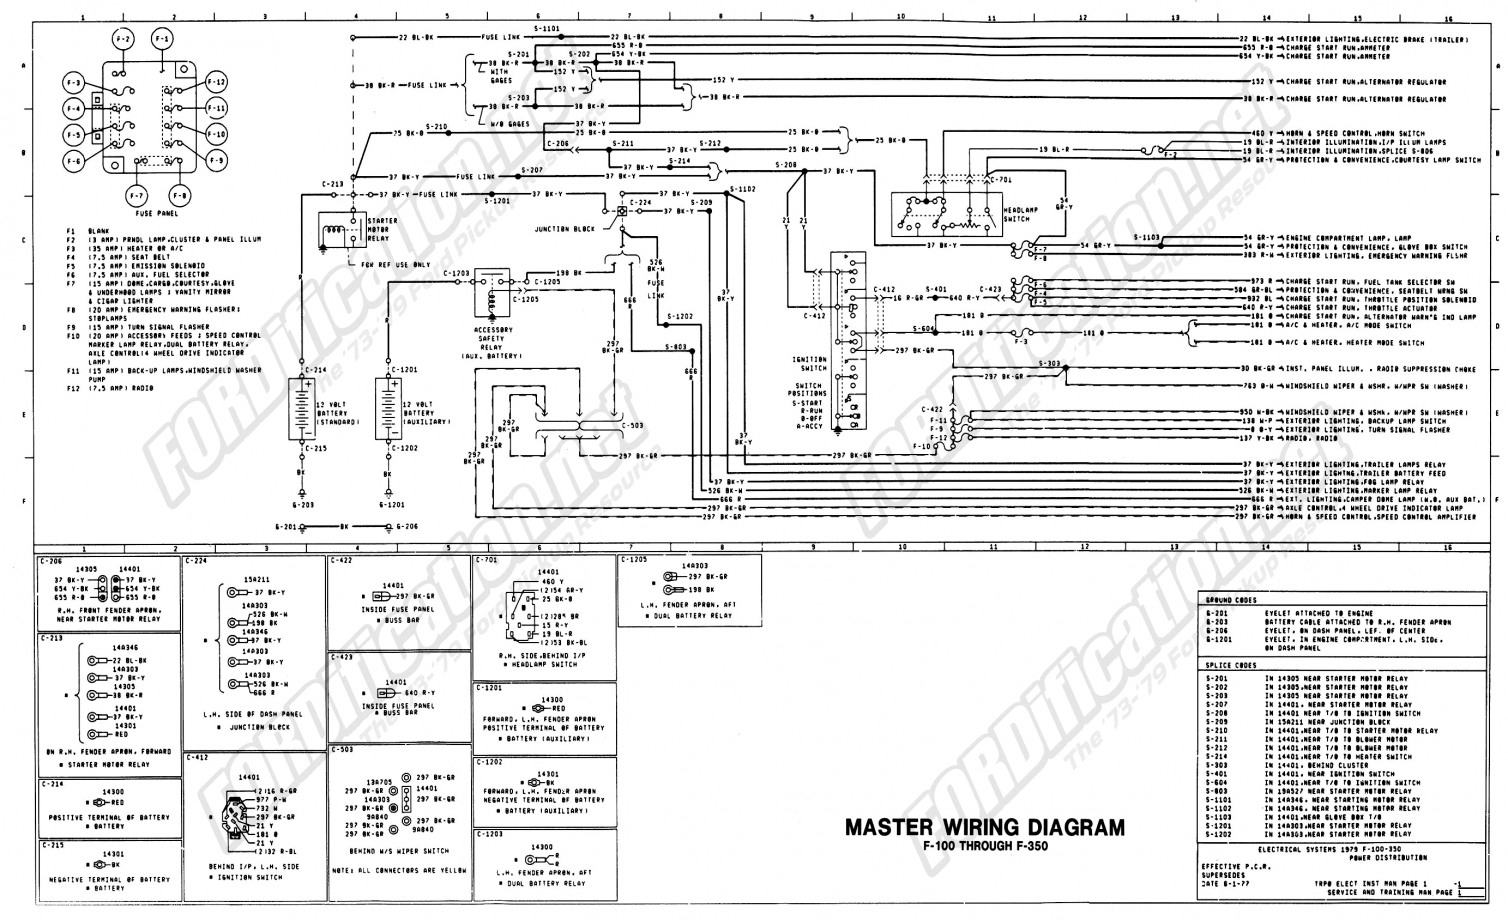 Dt466E Injector Wiring Diagram Free Picture Schematic - The Types Of - International Truck Wiring Diagram